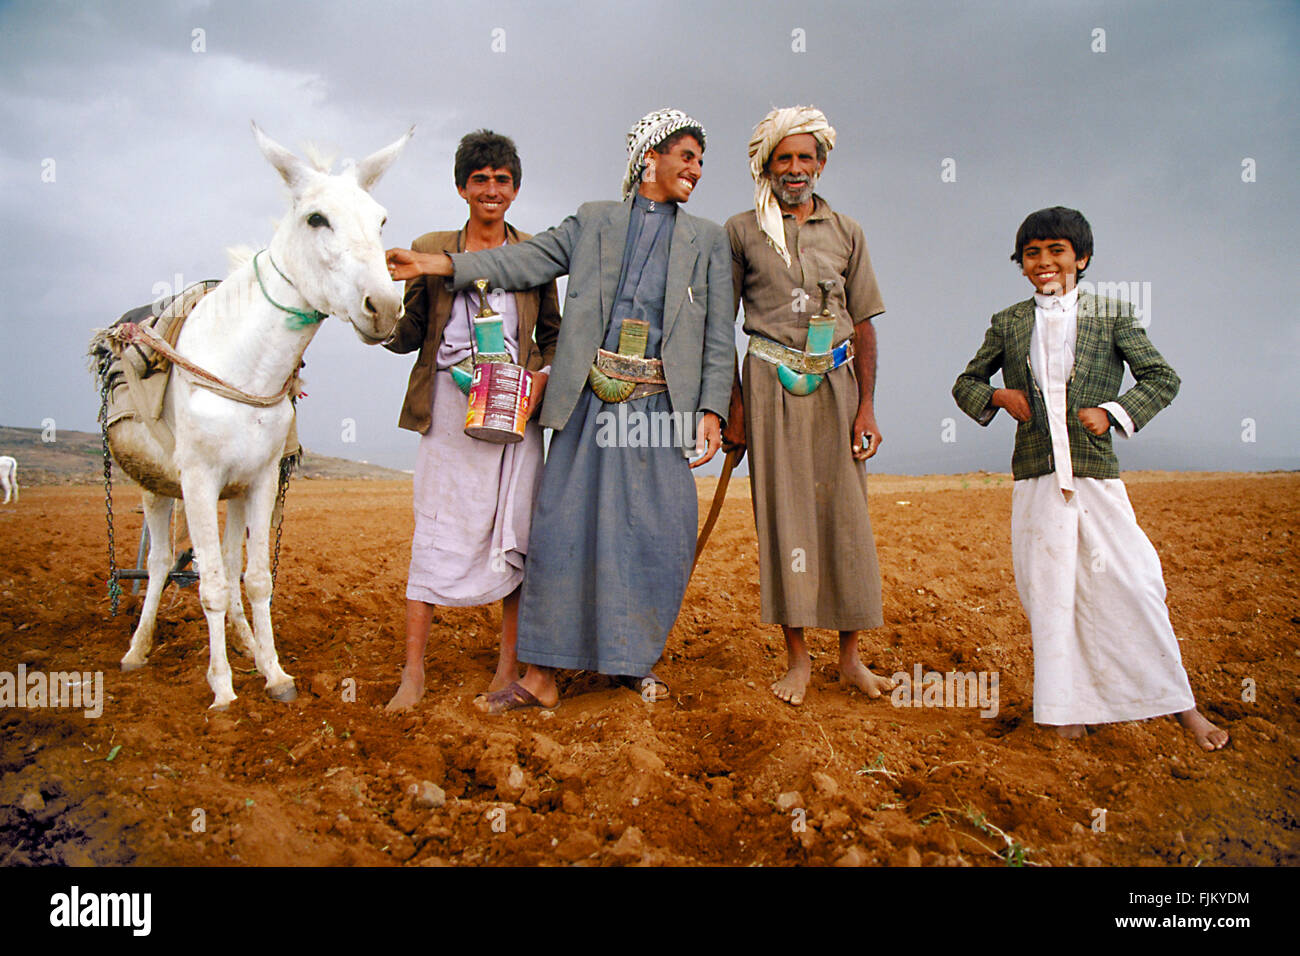 Father and sons together with their donkey posing for the photographer at a farm in Yemen. - Stock Image